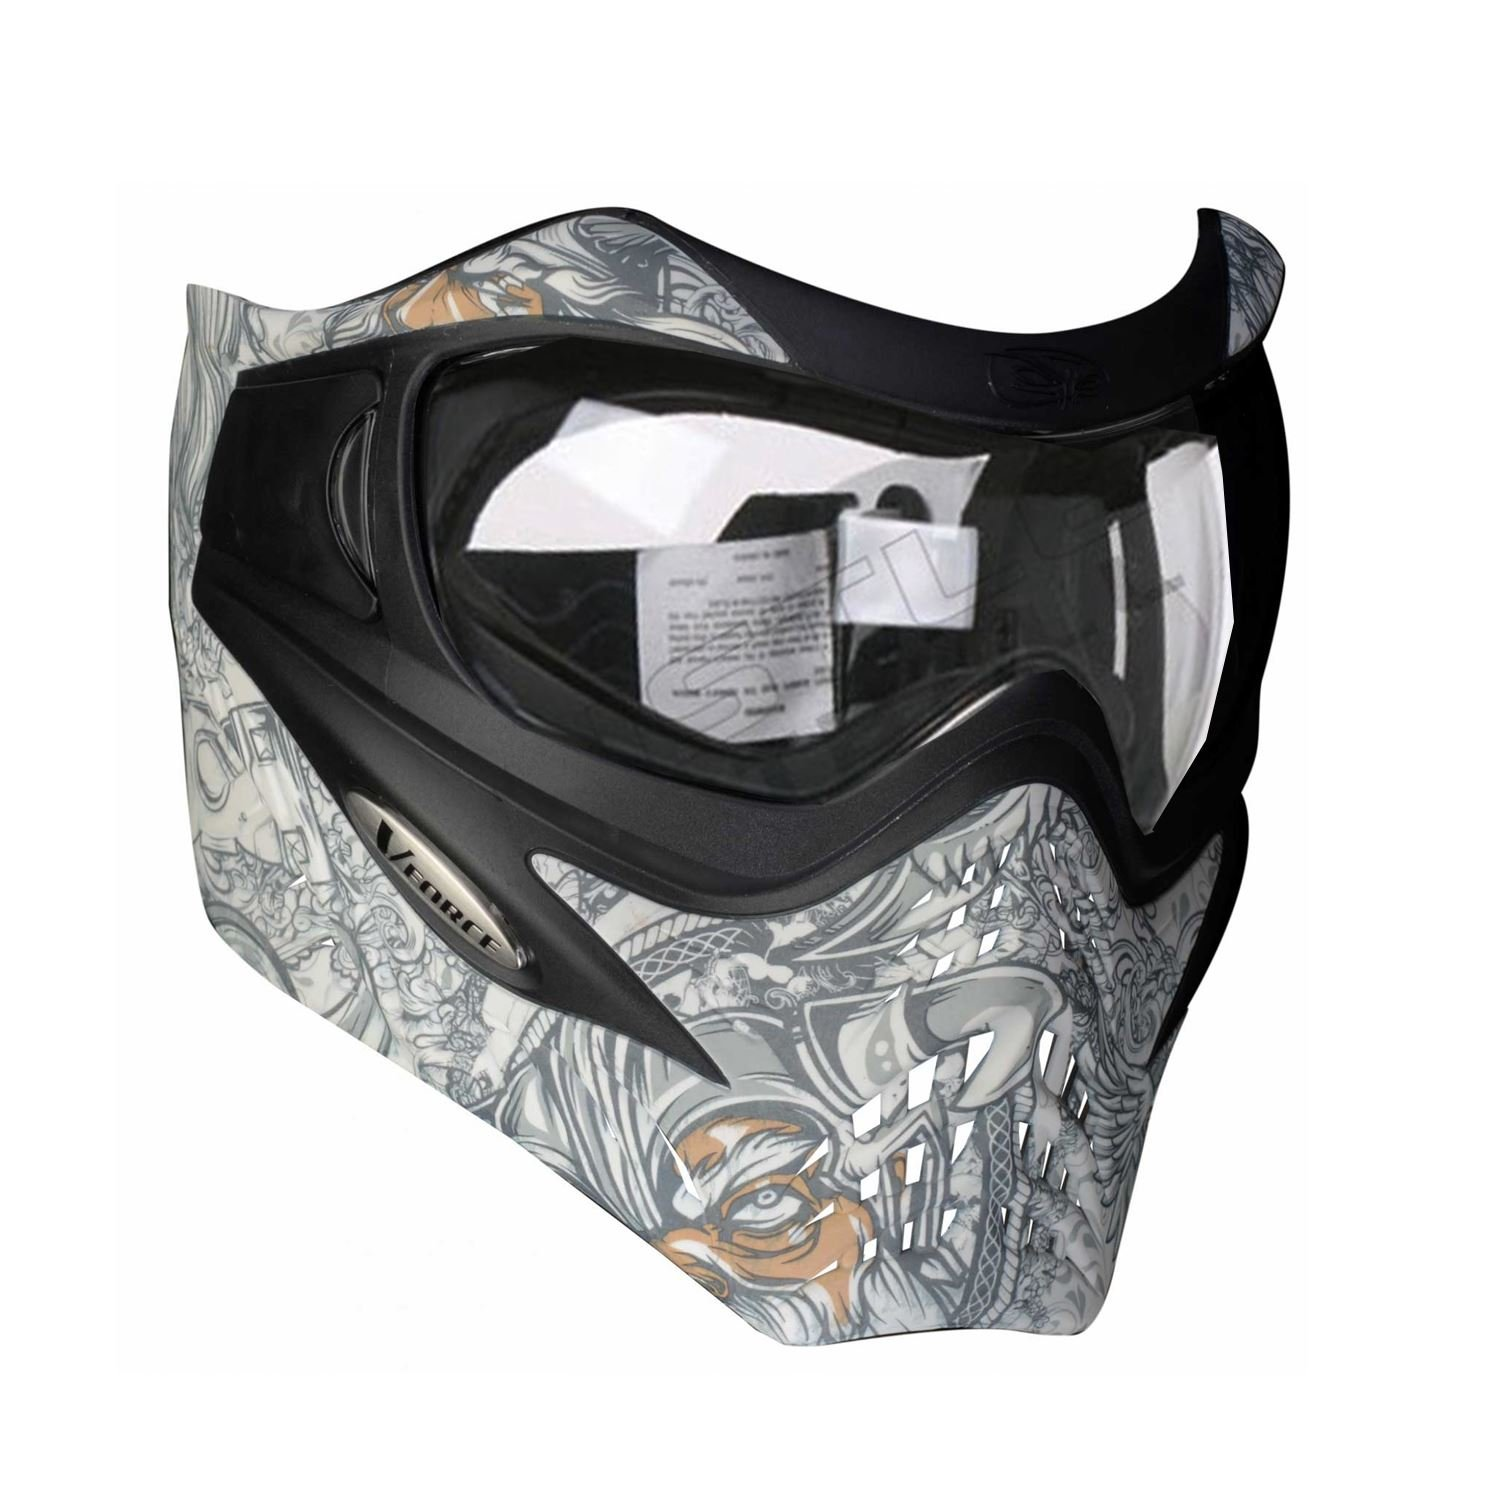 VForce Grill SE Thermal Paintball Mask - Viking by VForce